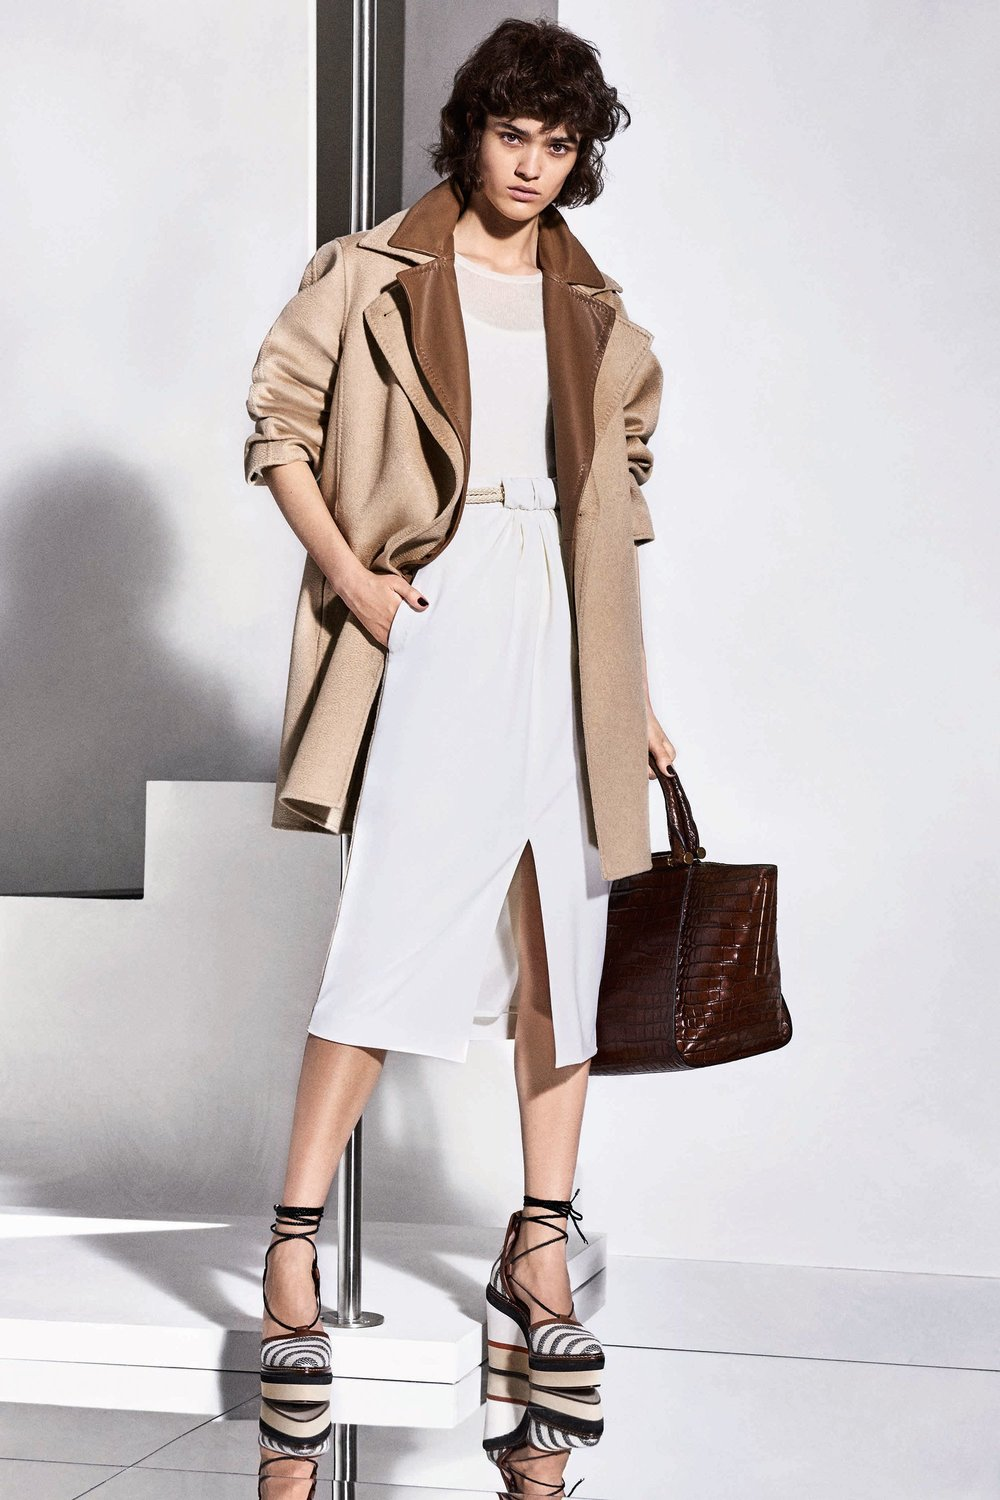 13-Max-Mara-Resort-18.jpg